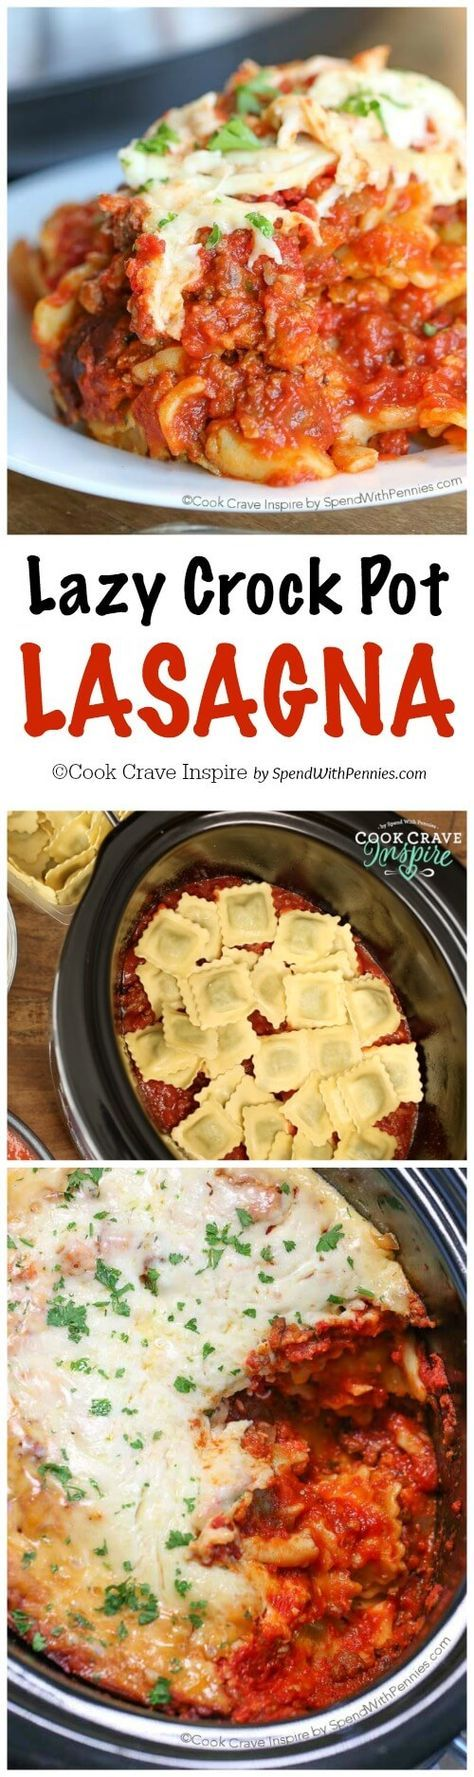 Lazy Crock Pot Lasagna - A family favorite and so quick and easy to make! A delicious meat sauce is layered with cheese and spinach filled ravioli and loads of gooey cheese and cooks up perfectly in the slow cooker. (Cheese Ravioli Tortellini)